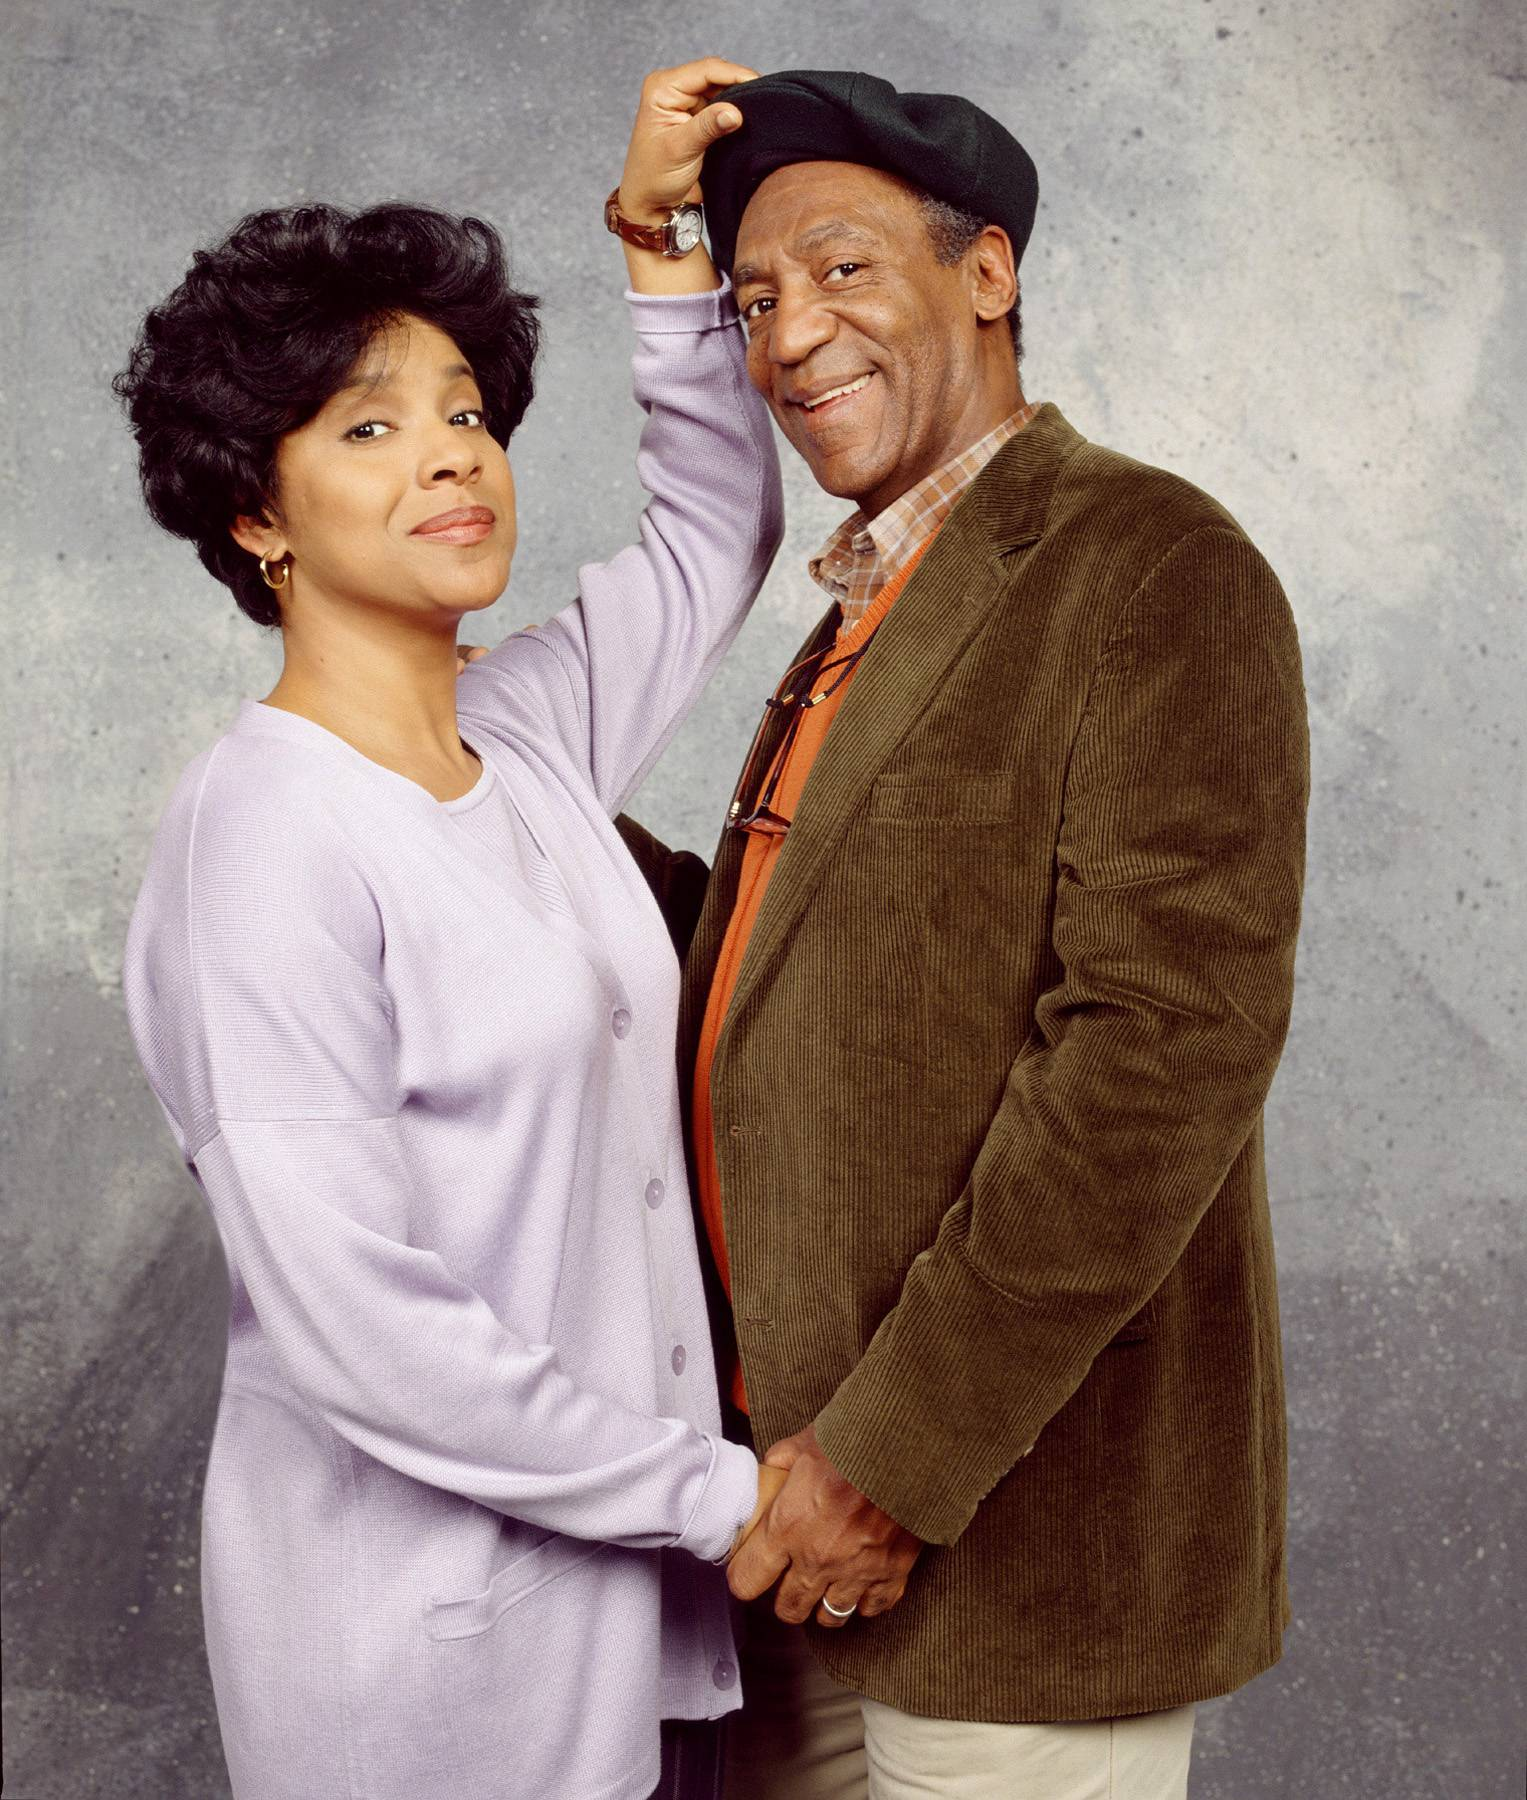 Television Icon - Helping create the foundation for family-friendly television targeting all races, Rash?d played TV's most beloved mother Clair Huxtable in The Cosby Show. Playing a practicing attorney who still made time for her family, she made the American dream seem that much more attainable for African-Americans everywhere.(Photo: CBS/Landov)